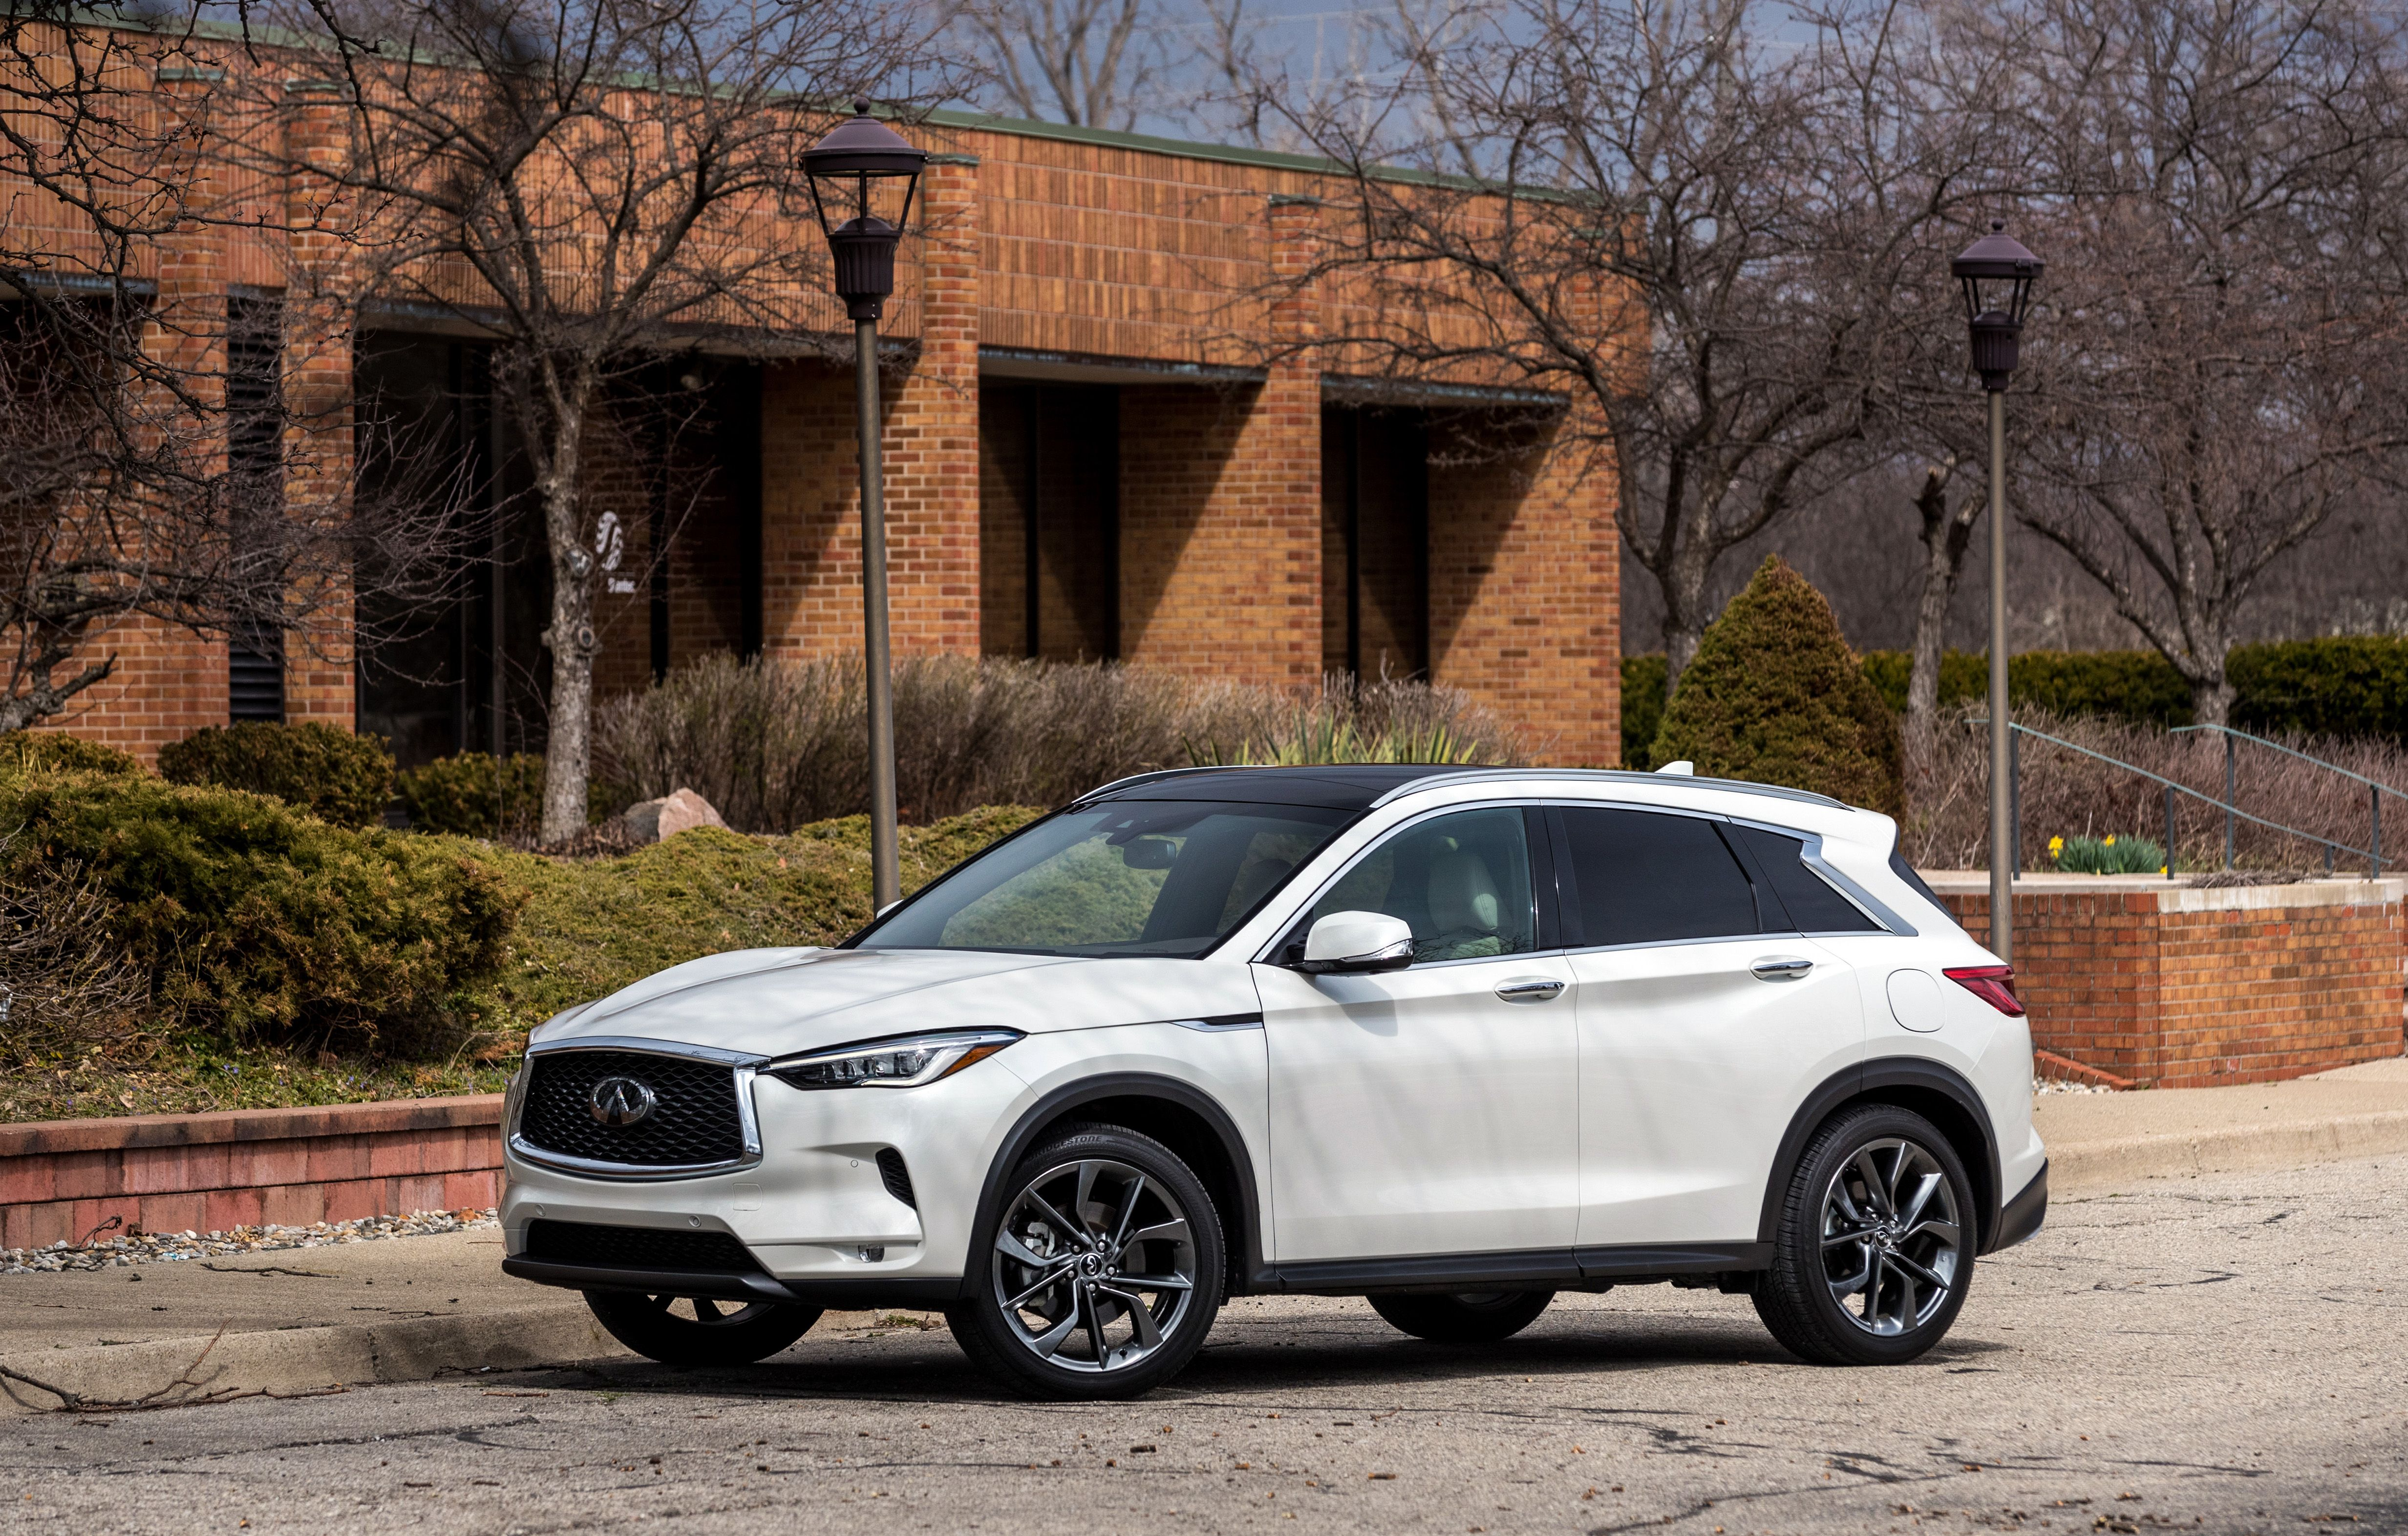 Best Luxury Compact Suv >> Best Compact Luxury Crossovers Suvs 2019 All 24 Small Suvs Ranked